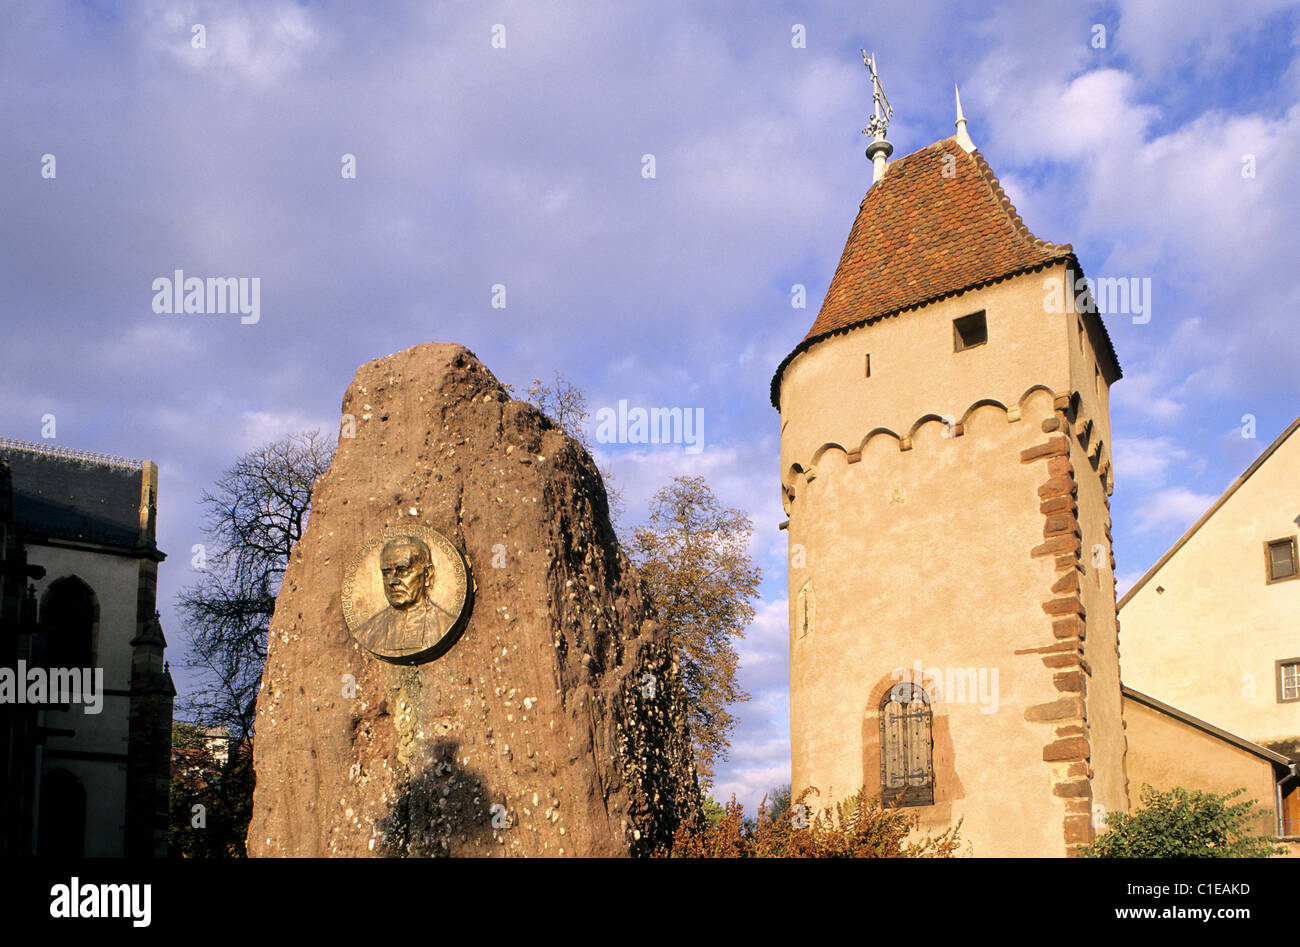 France, Bas Rhin, Obernai, tower of Poudriere at the bottom of the ramparts - Stock Image